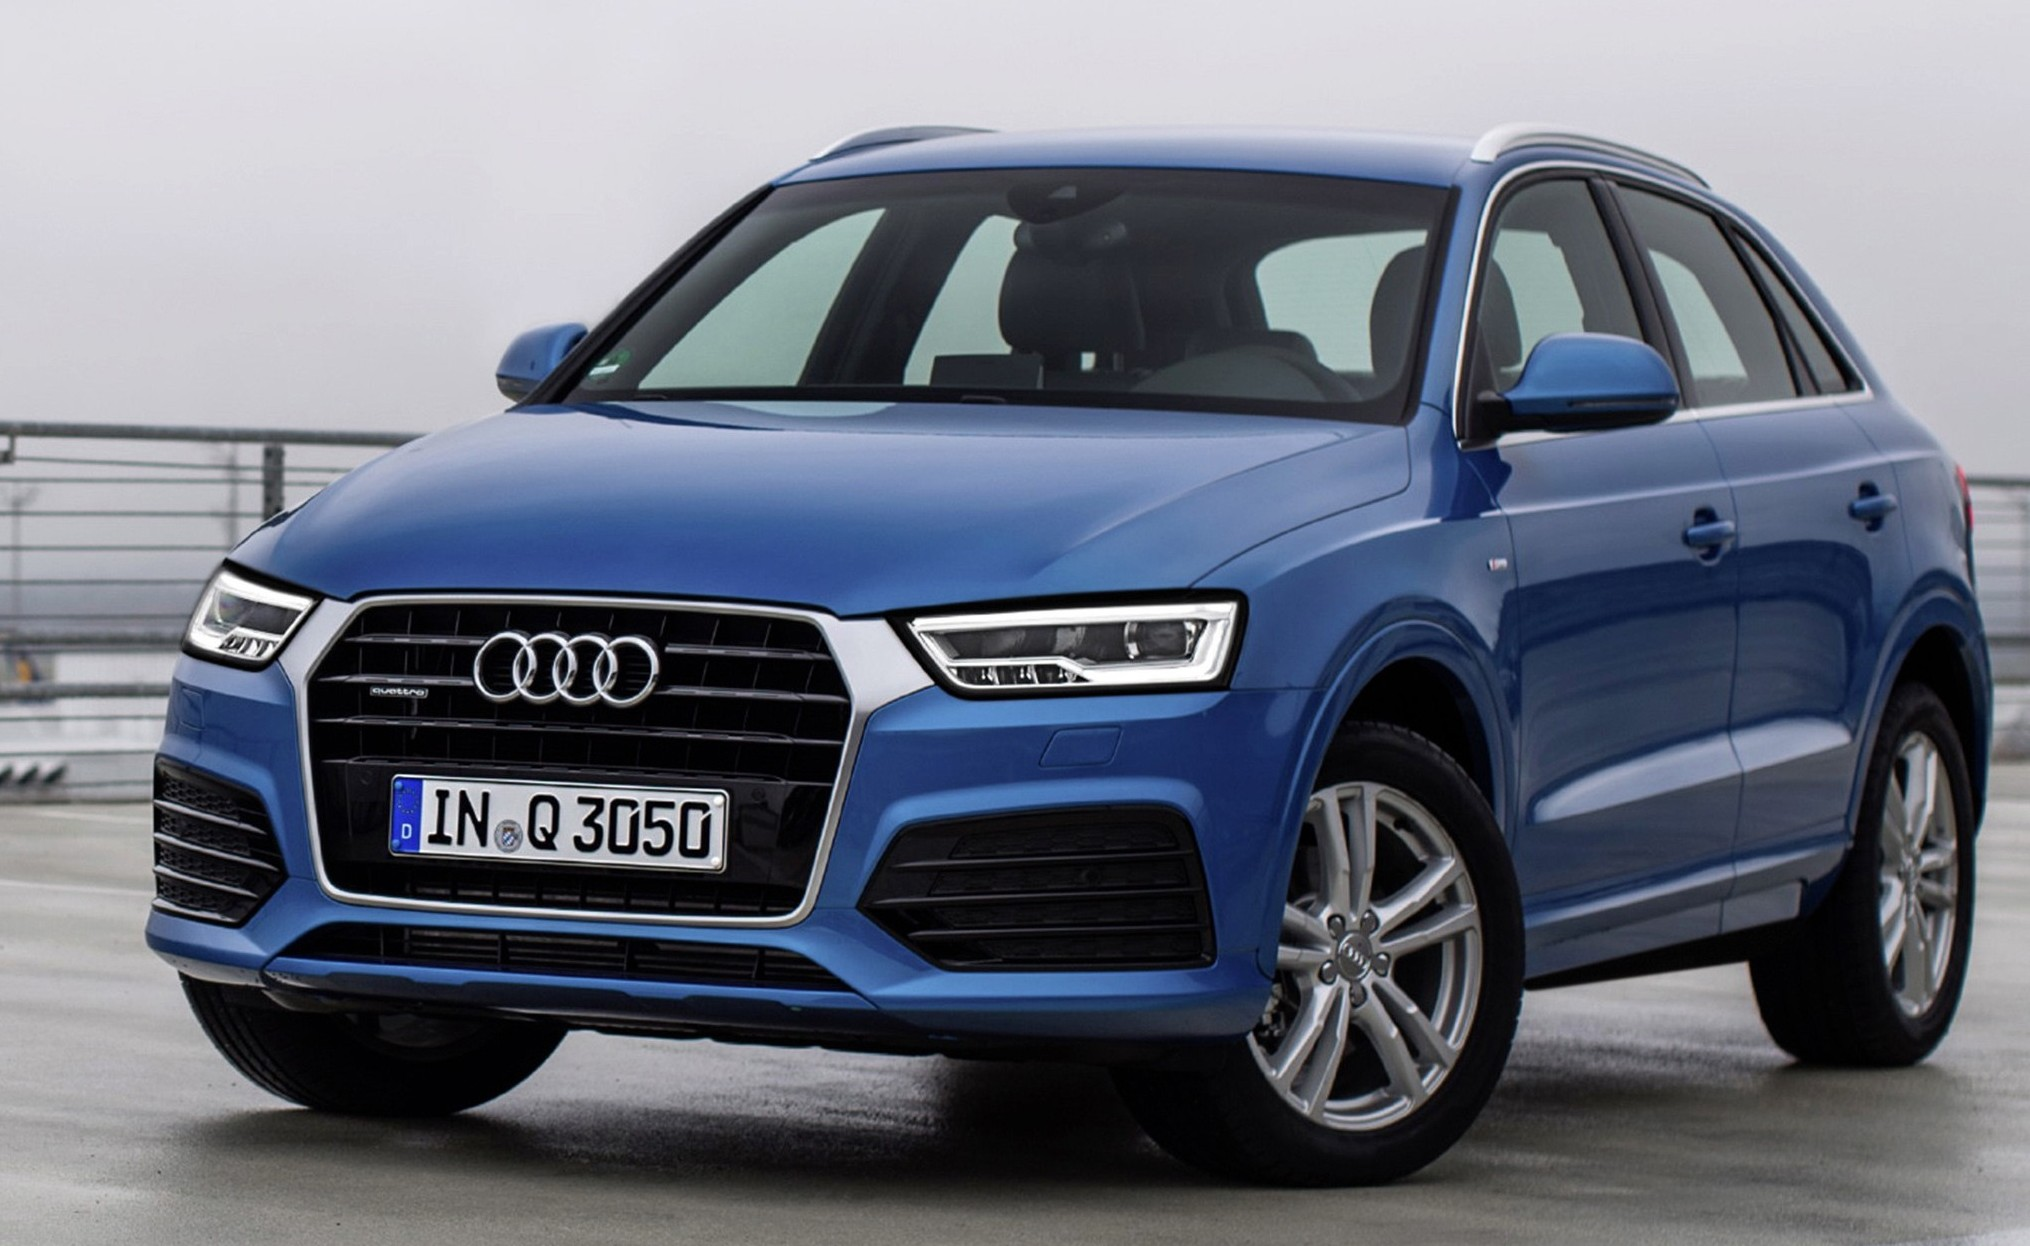 Audi Q3 facelift Malaysian brochures appear on site